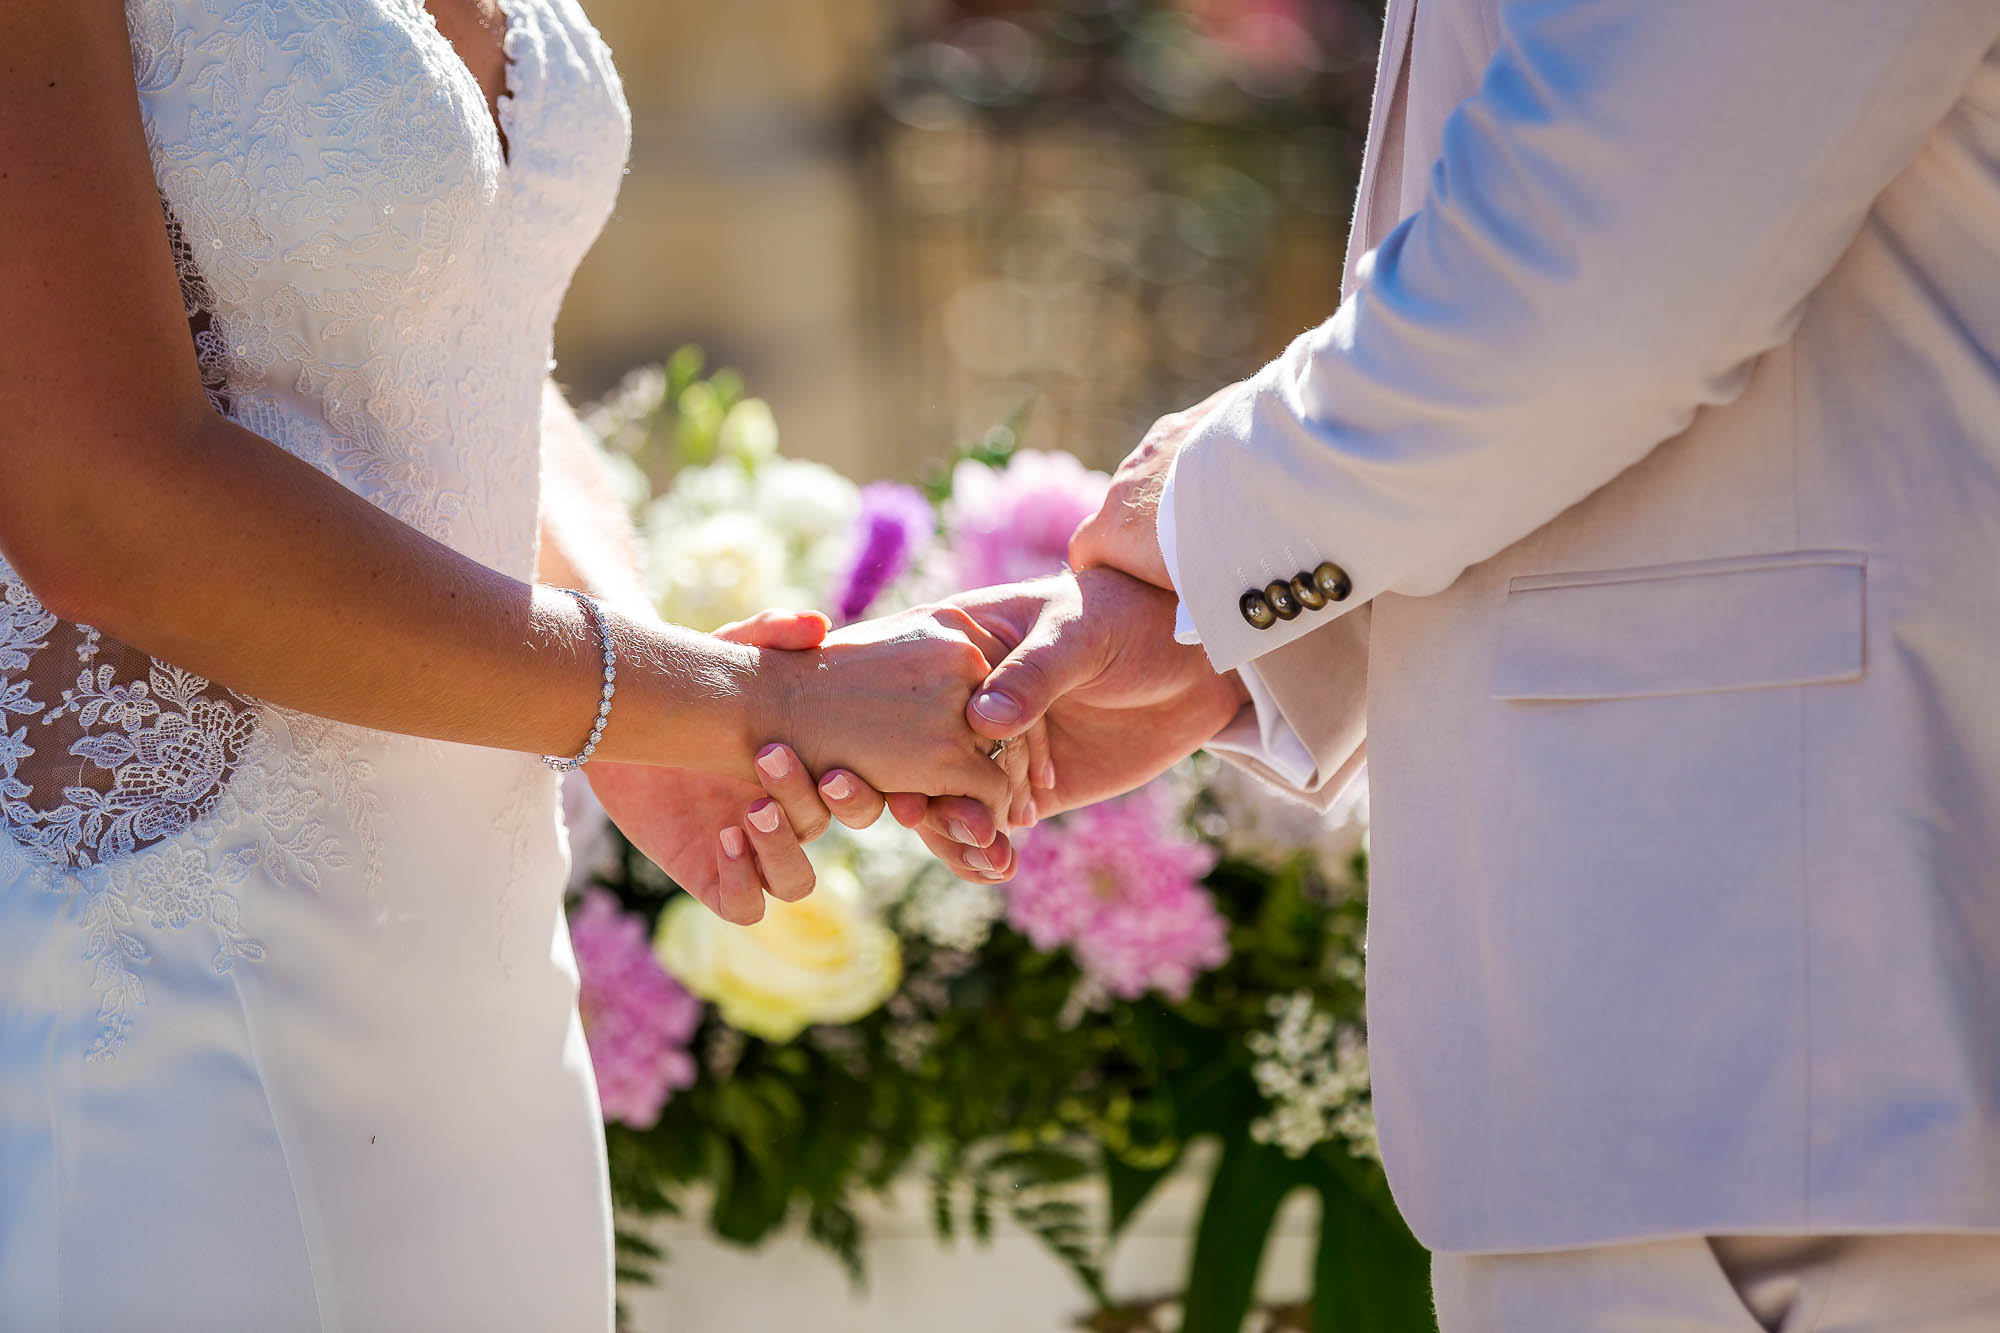 Bride and groom hold hands during the wedding ceremony. Photo by Elliot Nichol Photography.